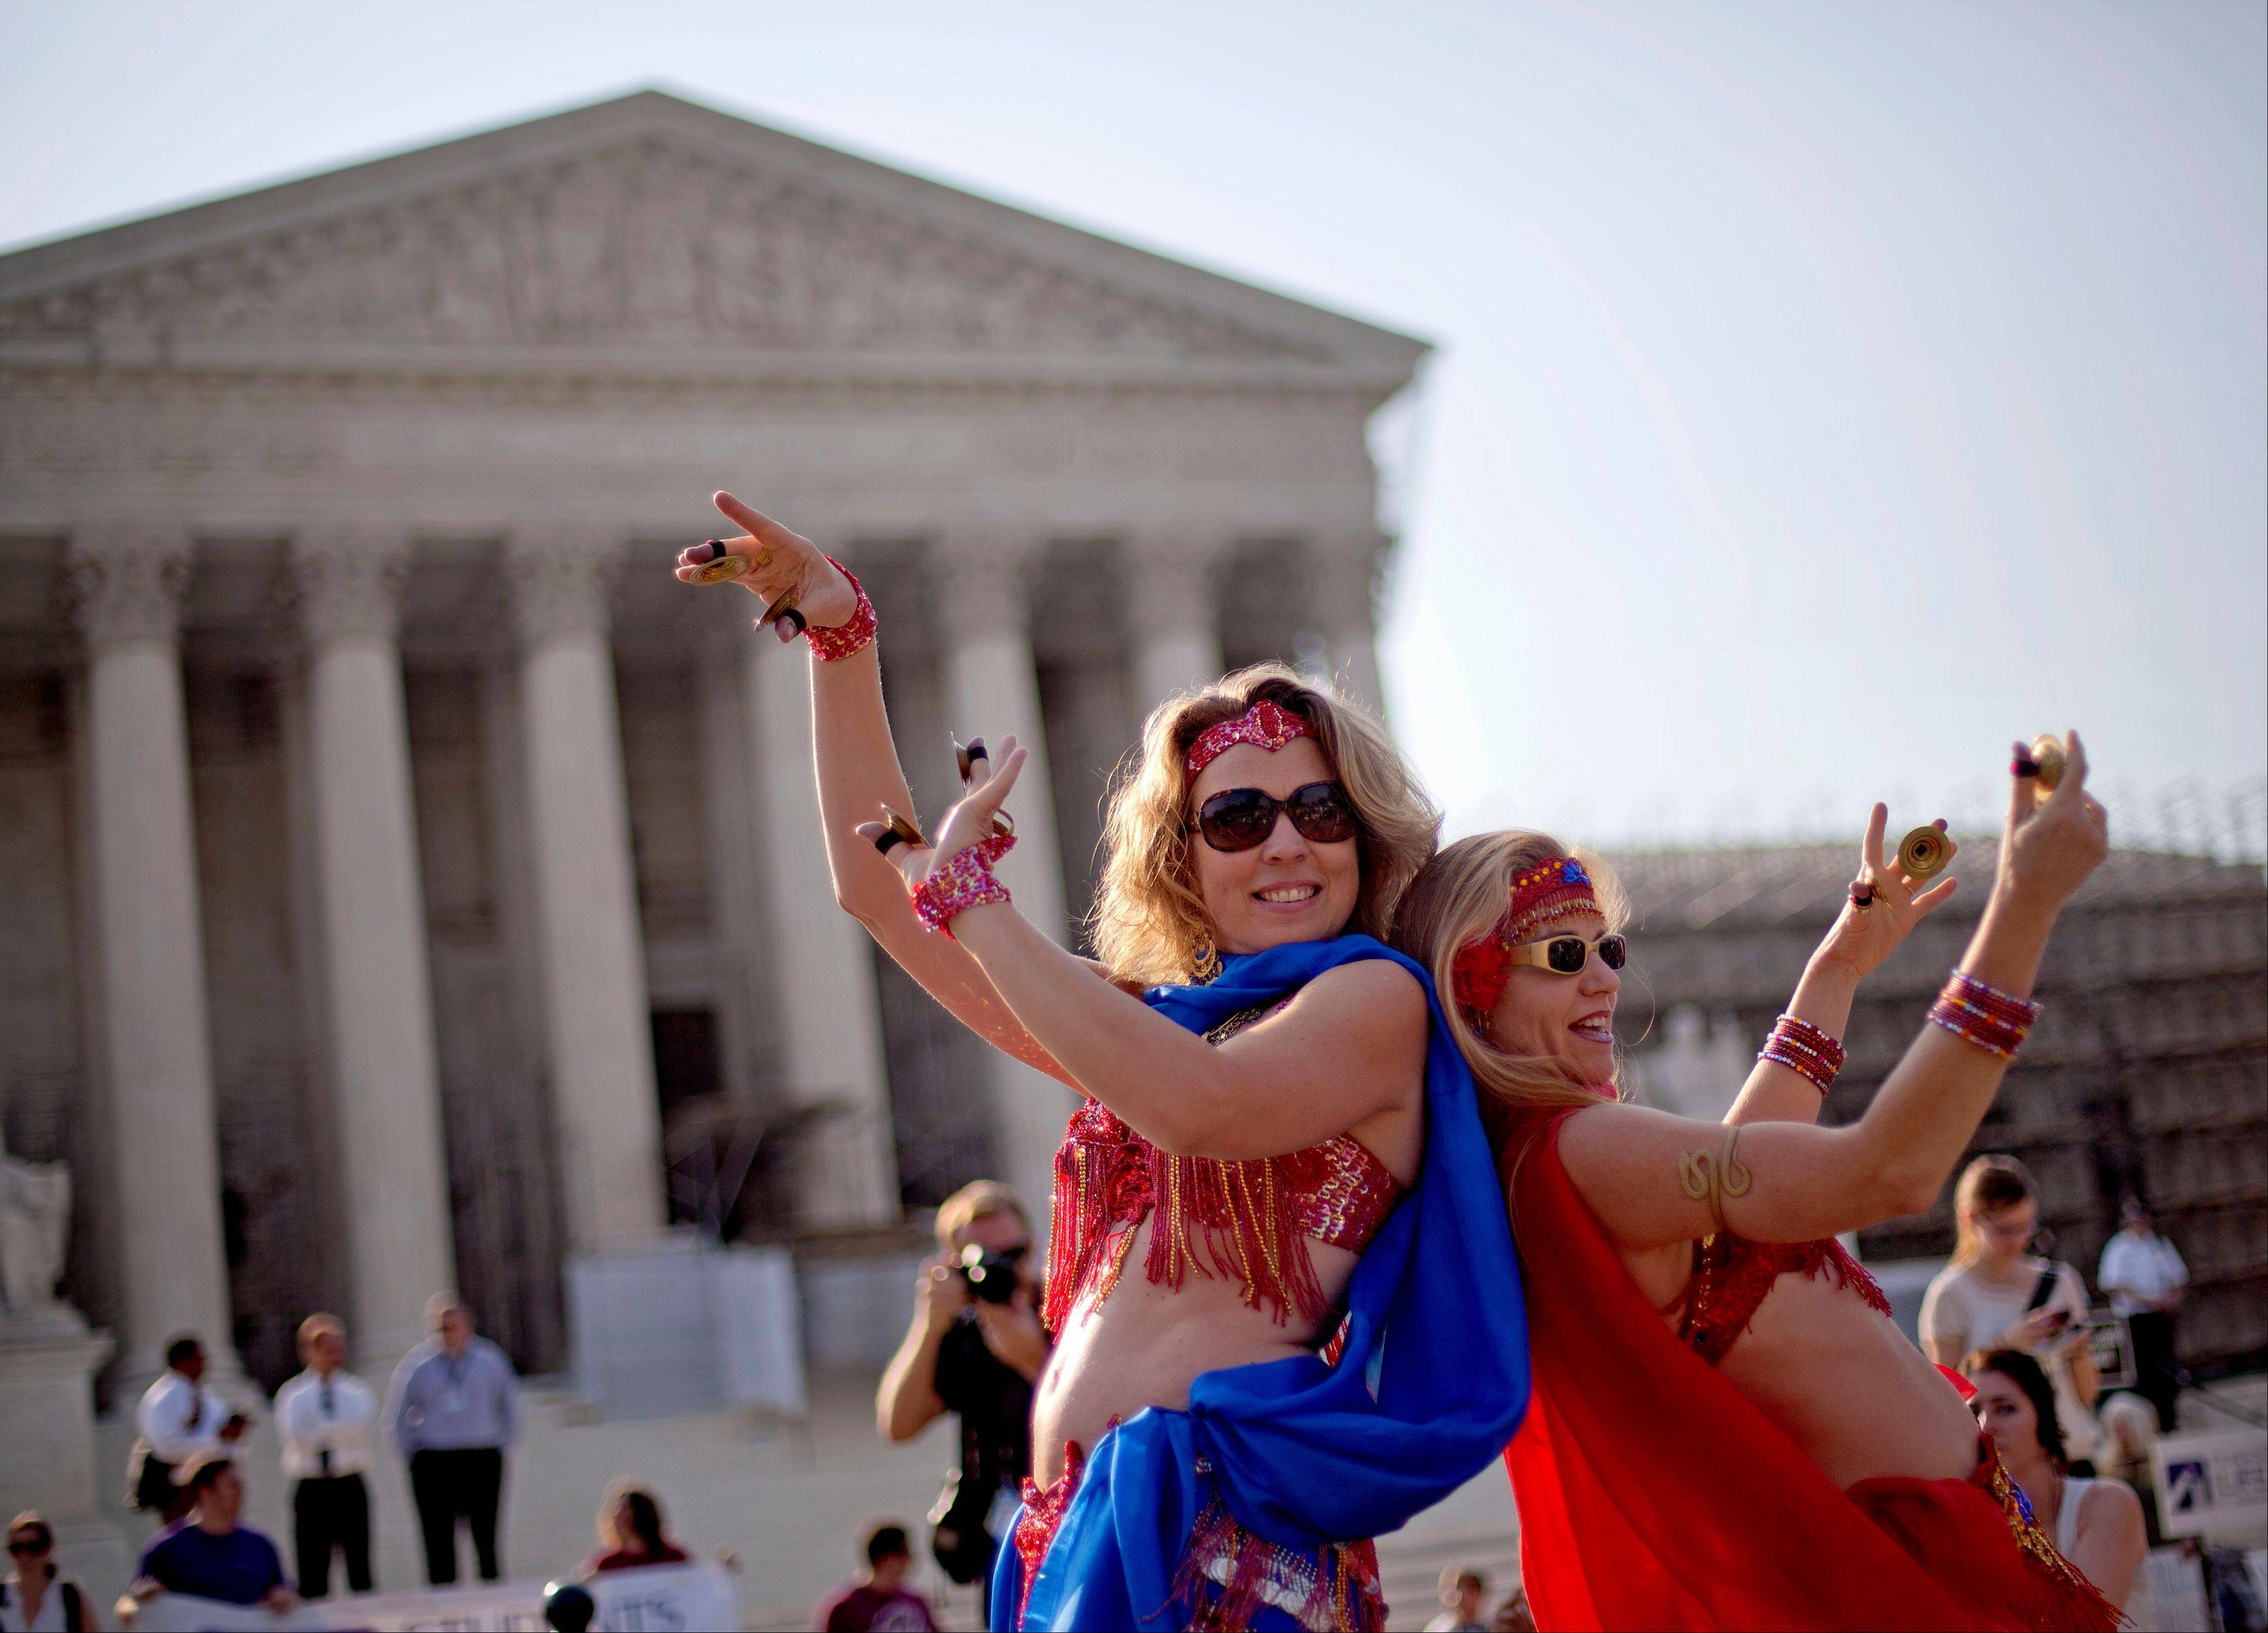 Belly dancers Angela Petry, left, and Jennifer Carpenter-Peak, both of Washington, dance outside the Supreme Court in Washington,Thursday, June 28, 2012, in Washington, as part of a demonstration as the Supreme Court is expected to rule on President Barack Obama's health care law.